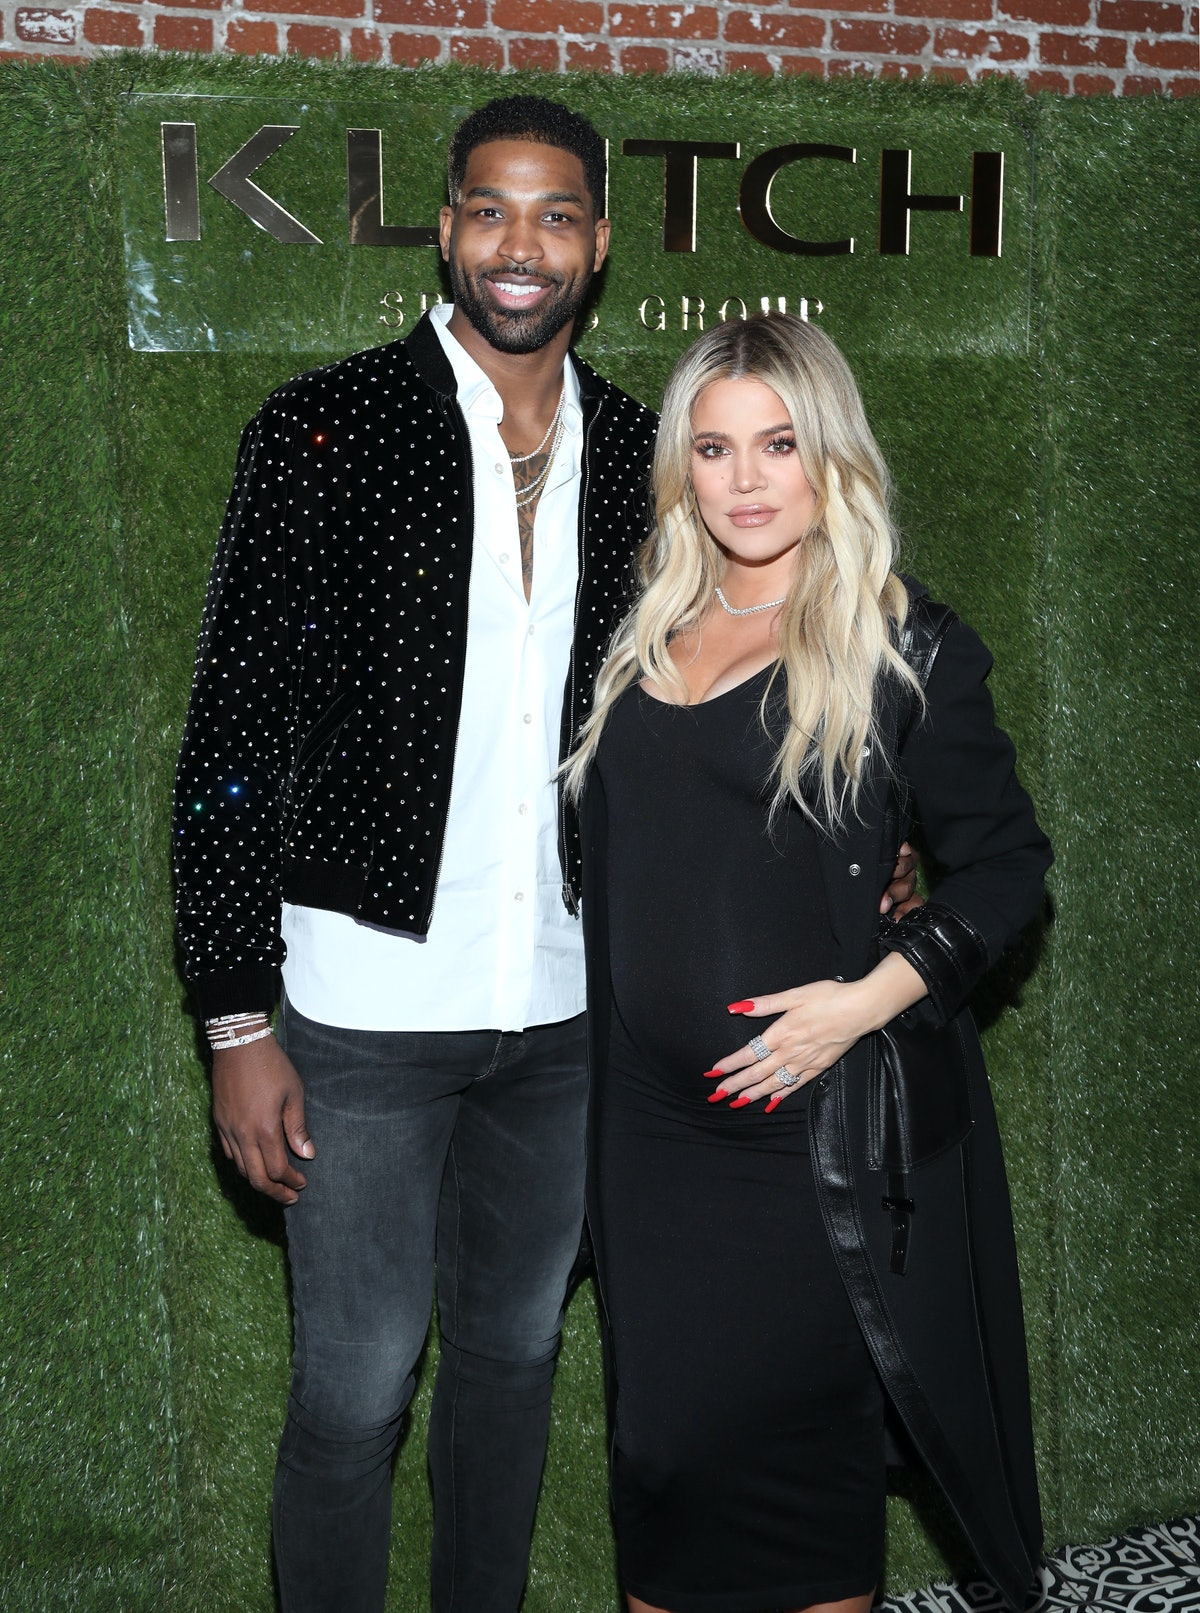 Lamar Odom admitted he wants to get back with Khloé Kardashian, and it's a lot.